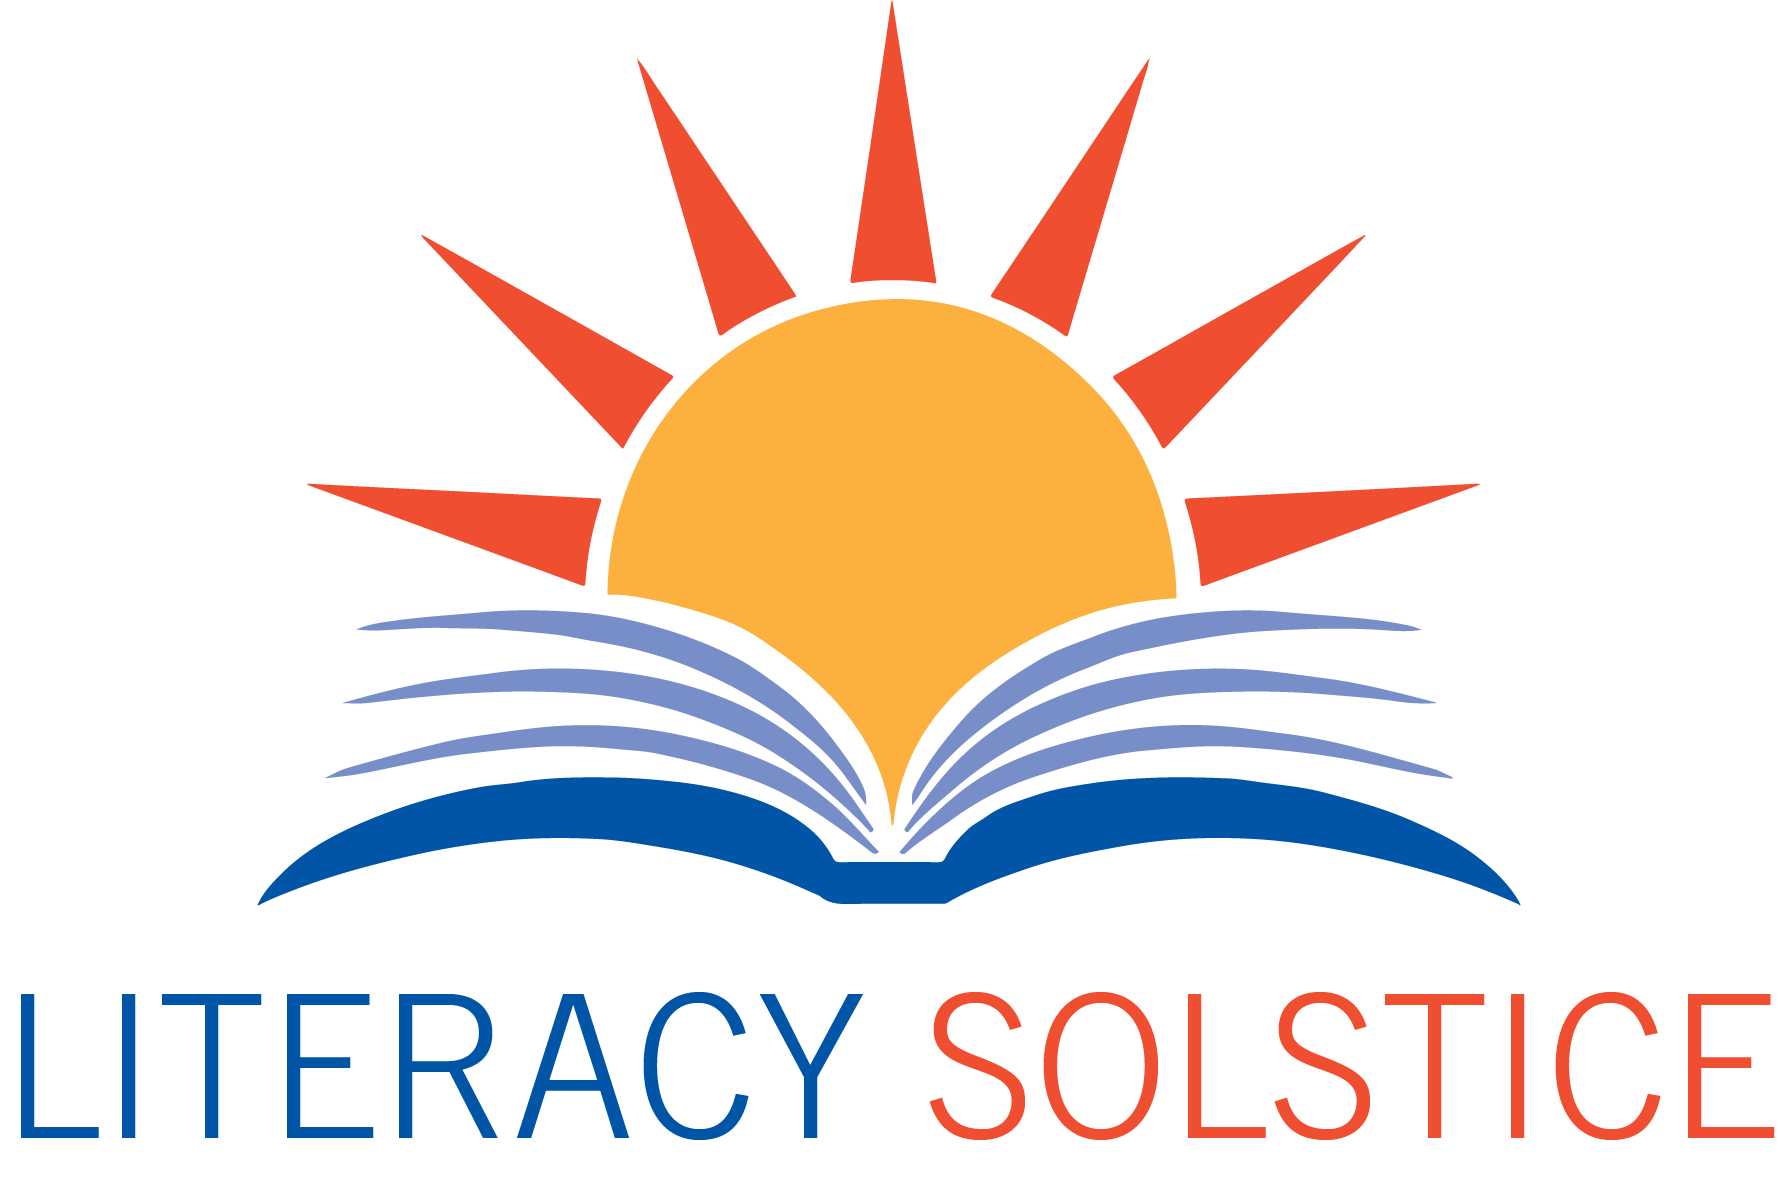 Literacy solstice stacked.png